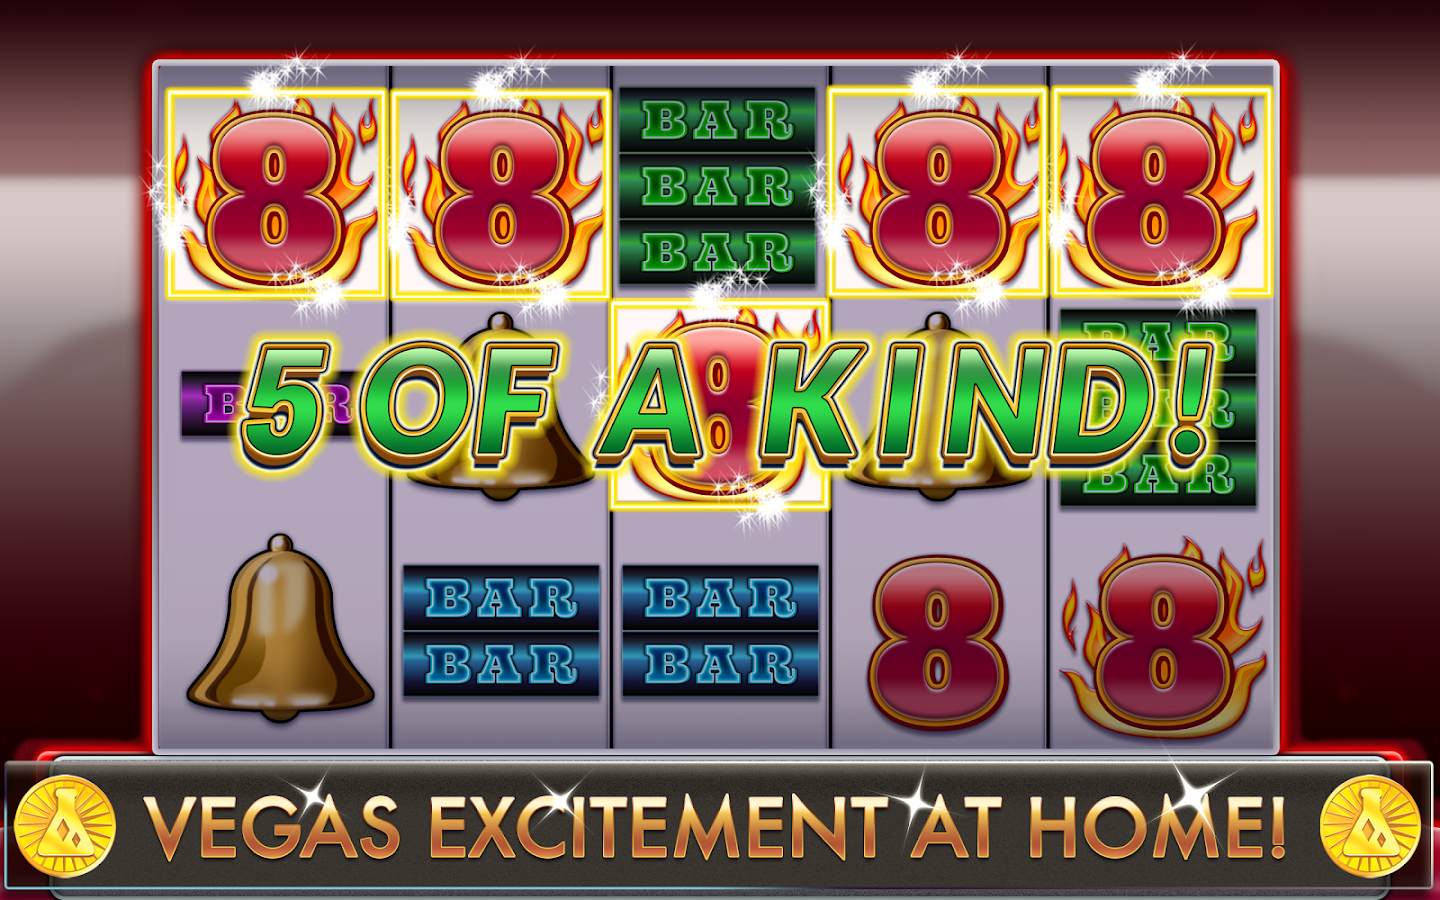 888 Slot Machine Reviews (No Free Games)